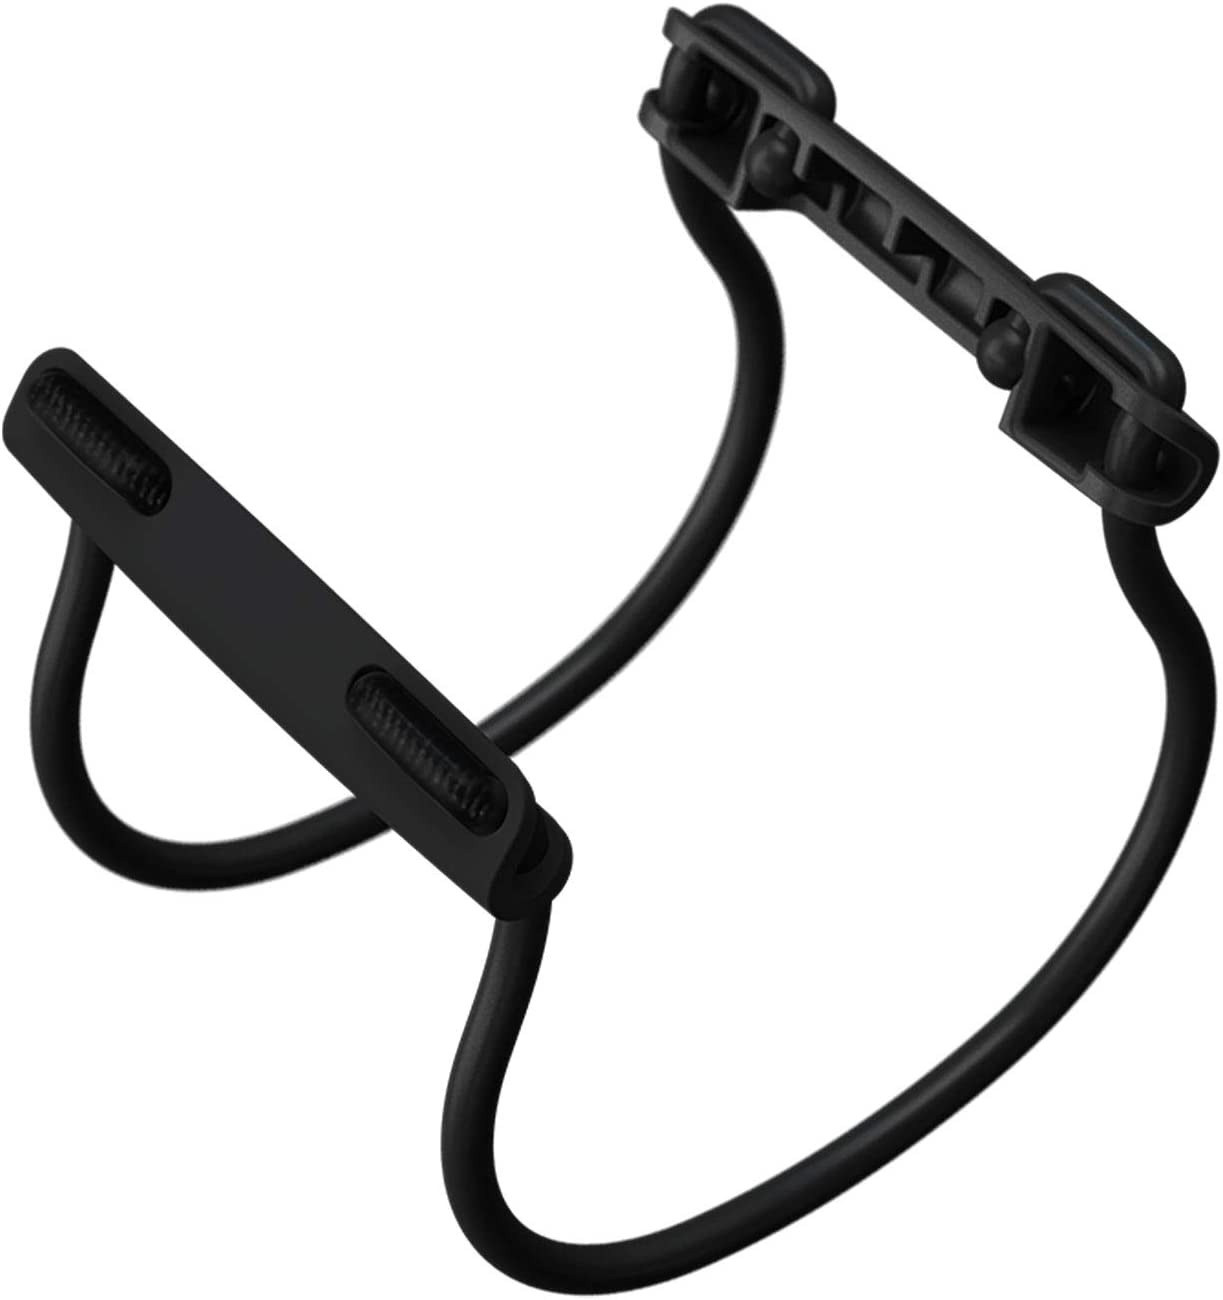 Suunto Bungee Adapter Kit